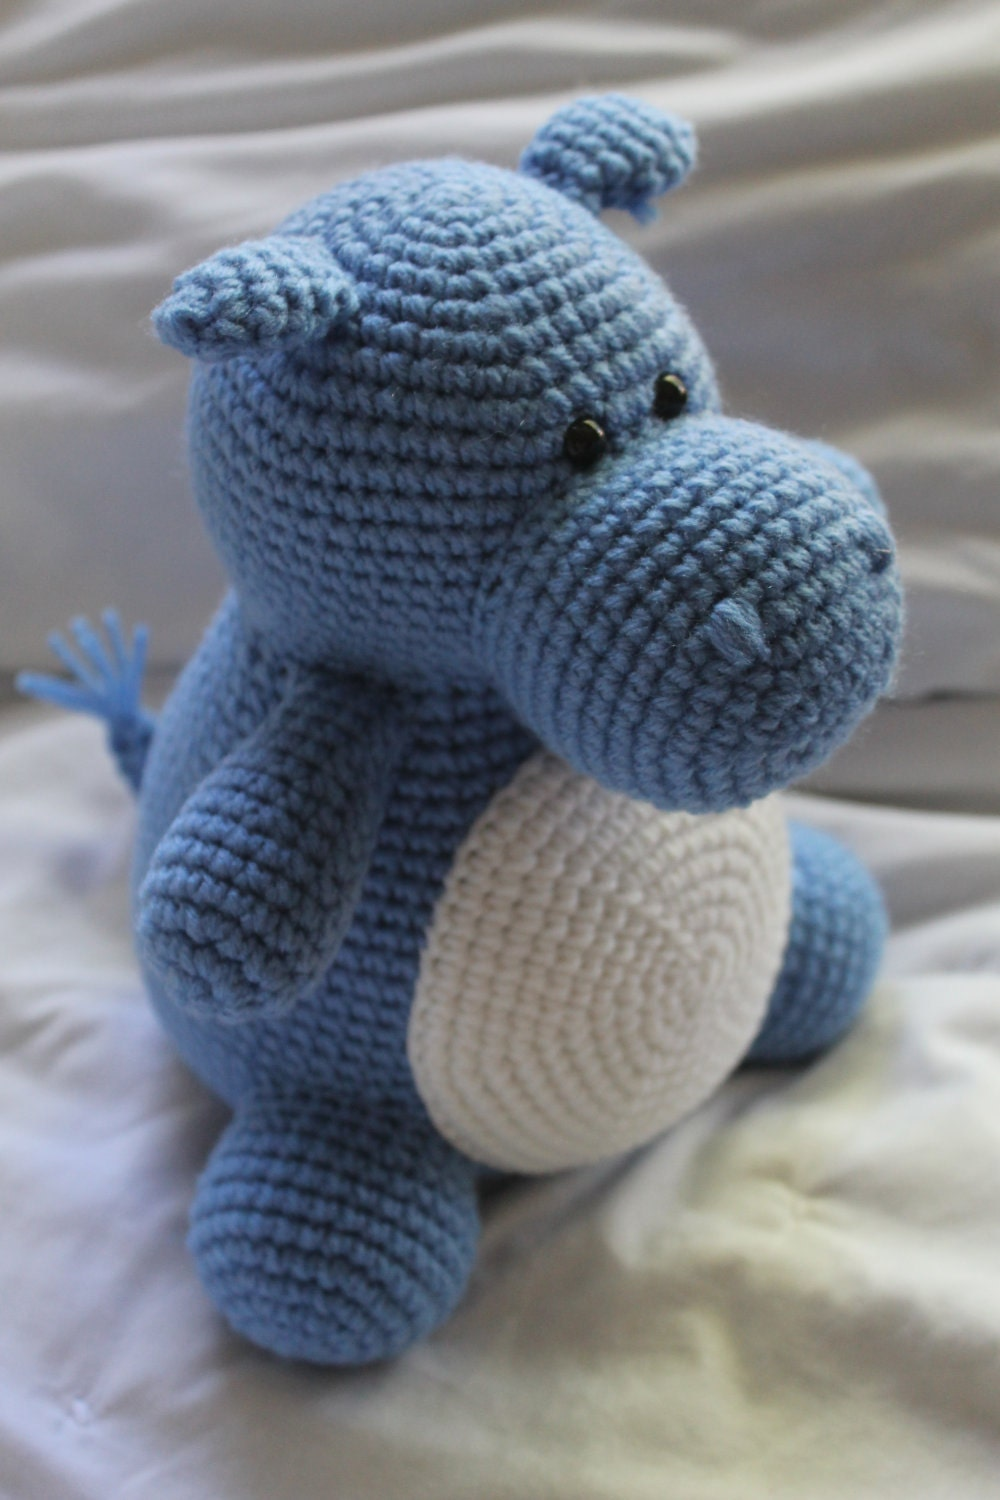 Hilda the Hippo Crochet Amigurumi PATTERN ONLY by daveydreamer